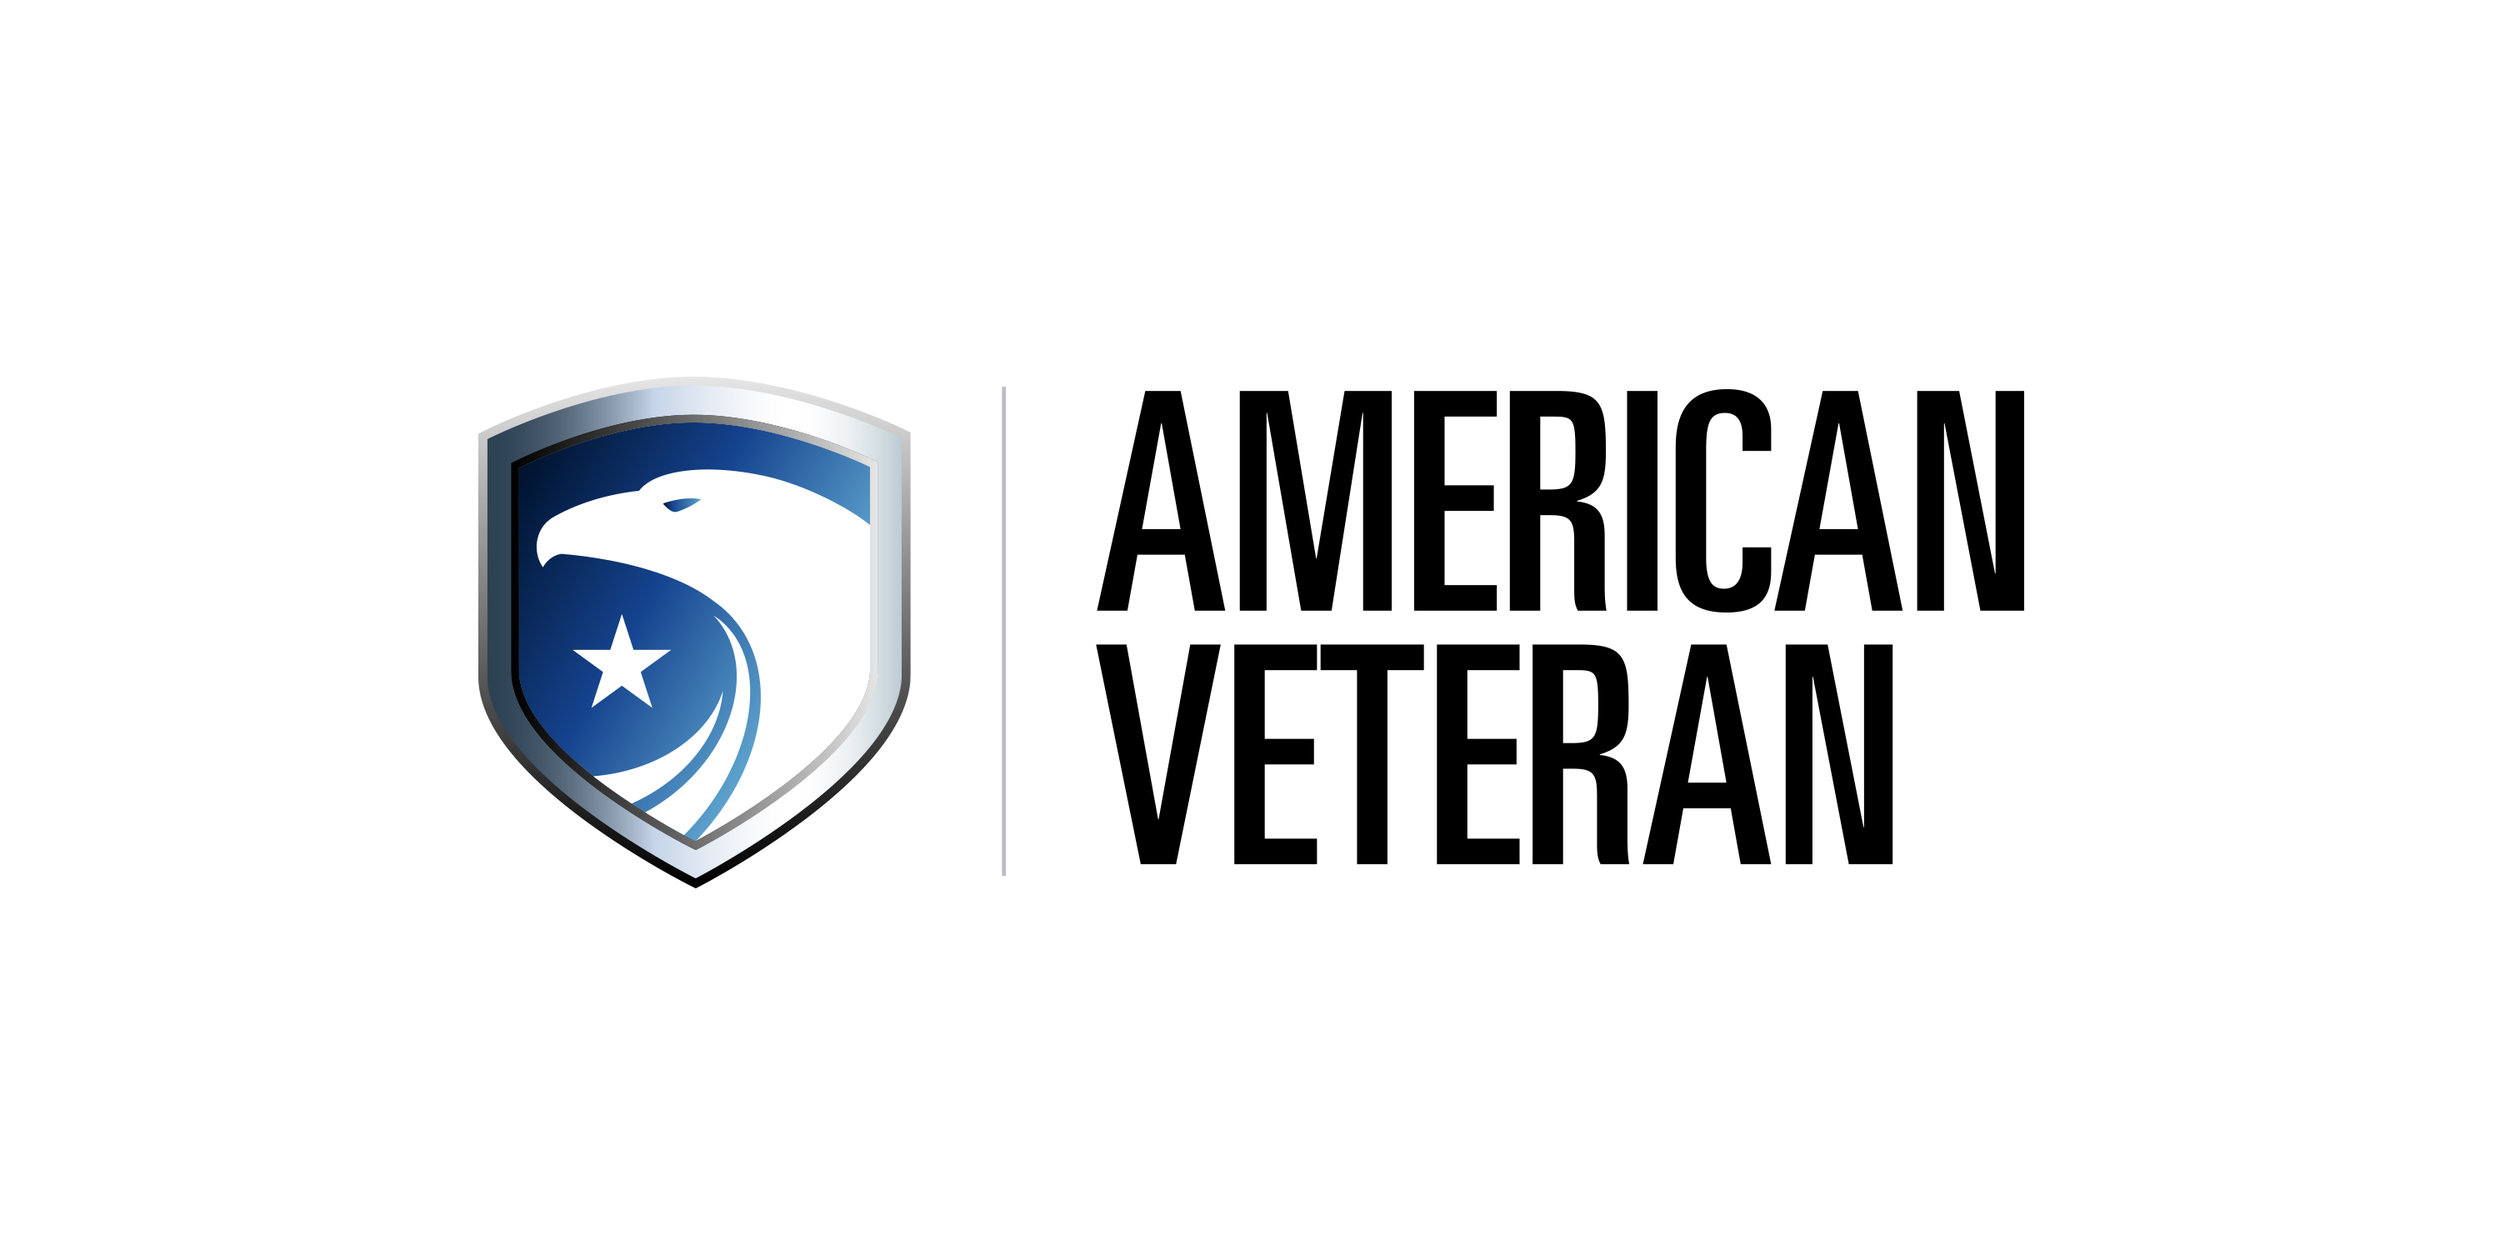 Web_Samples_AmericanVet_Logos_3.jpg